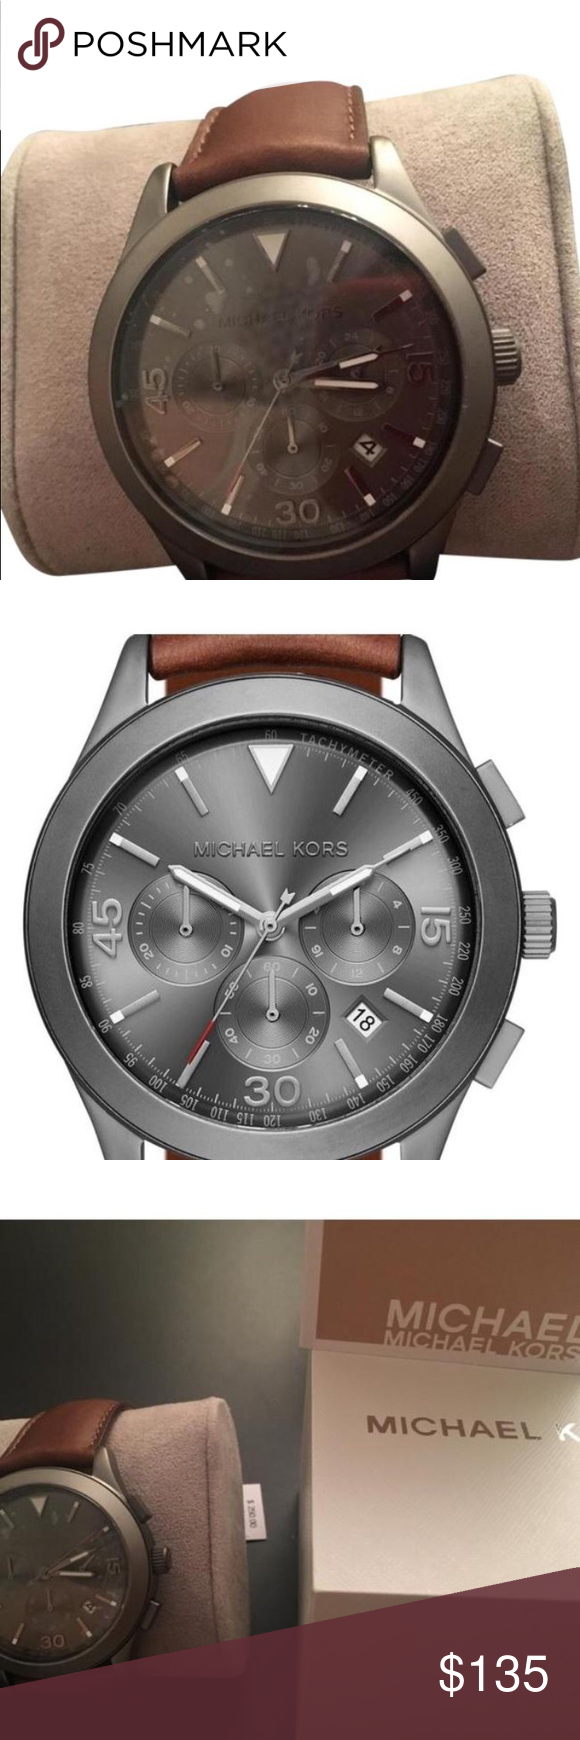 ee2616d4f165 Michael Kors MK 8471 watch Gun metal gareth and brown leather Chrono MK  8471 watch Item